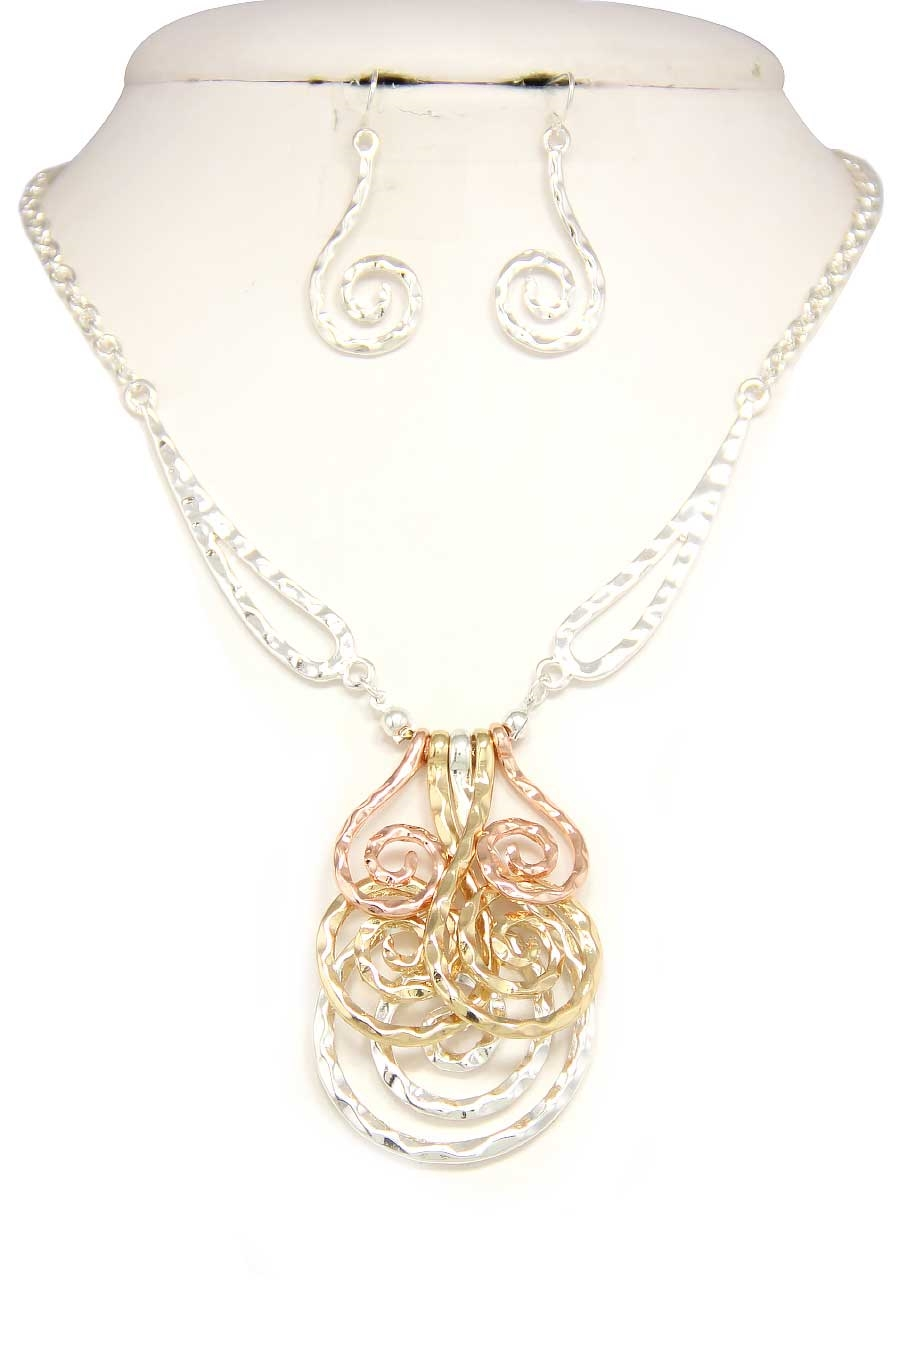 MULTI SPIRAL DROP NECKLACE - orangeshine.com